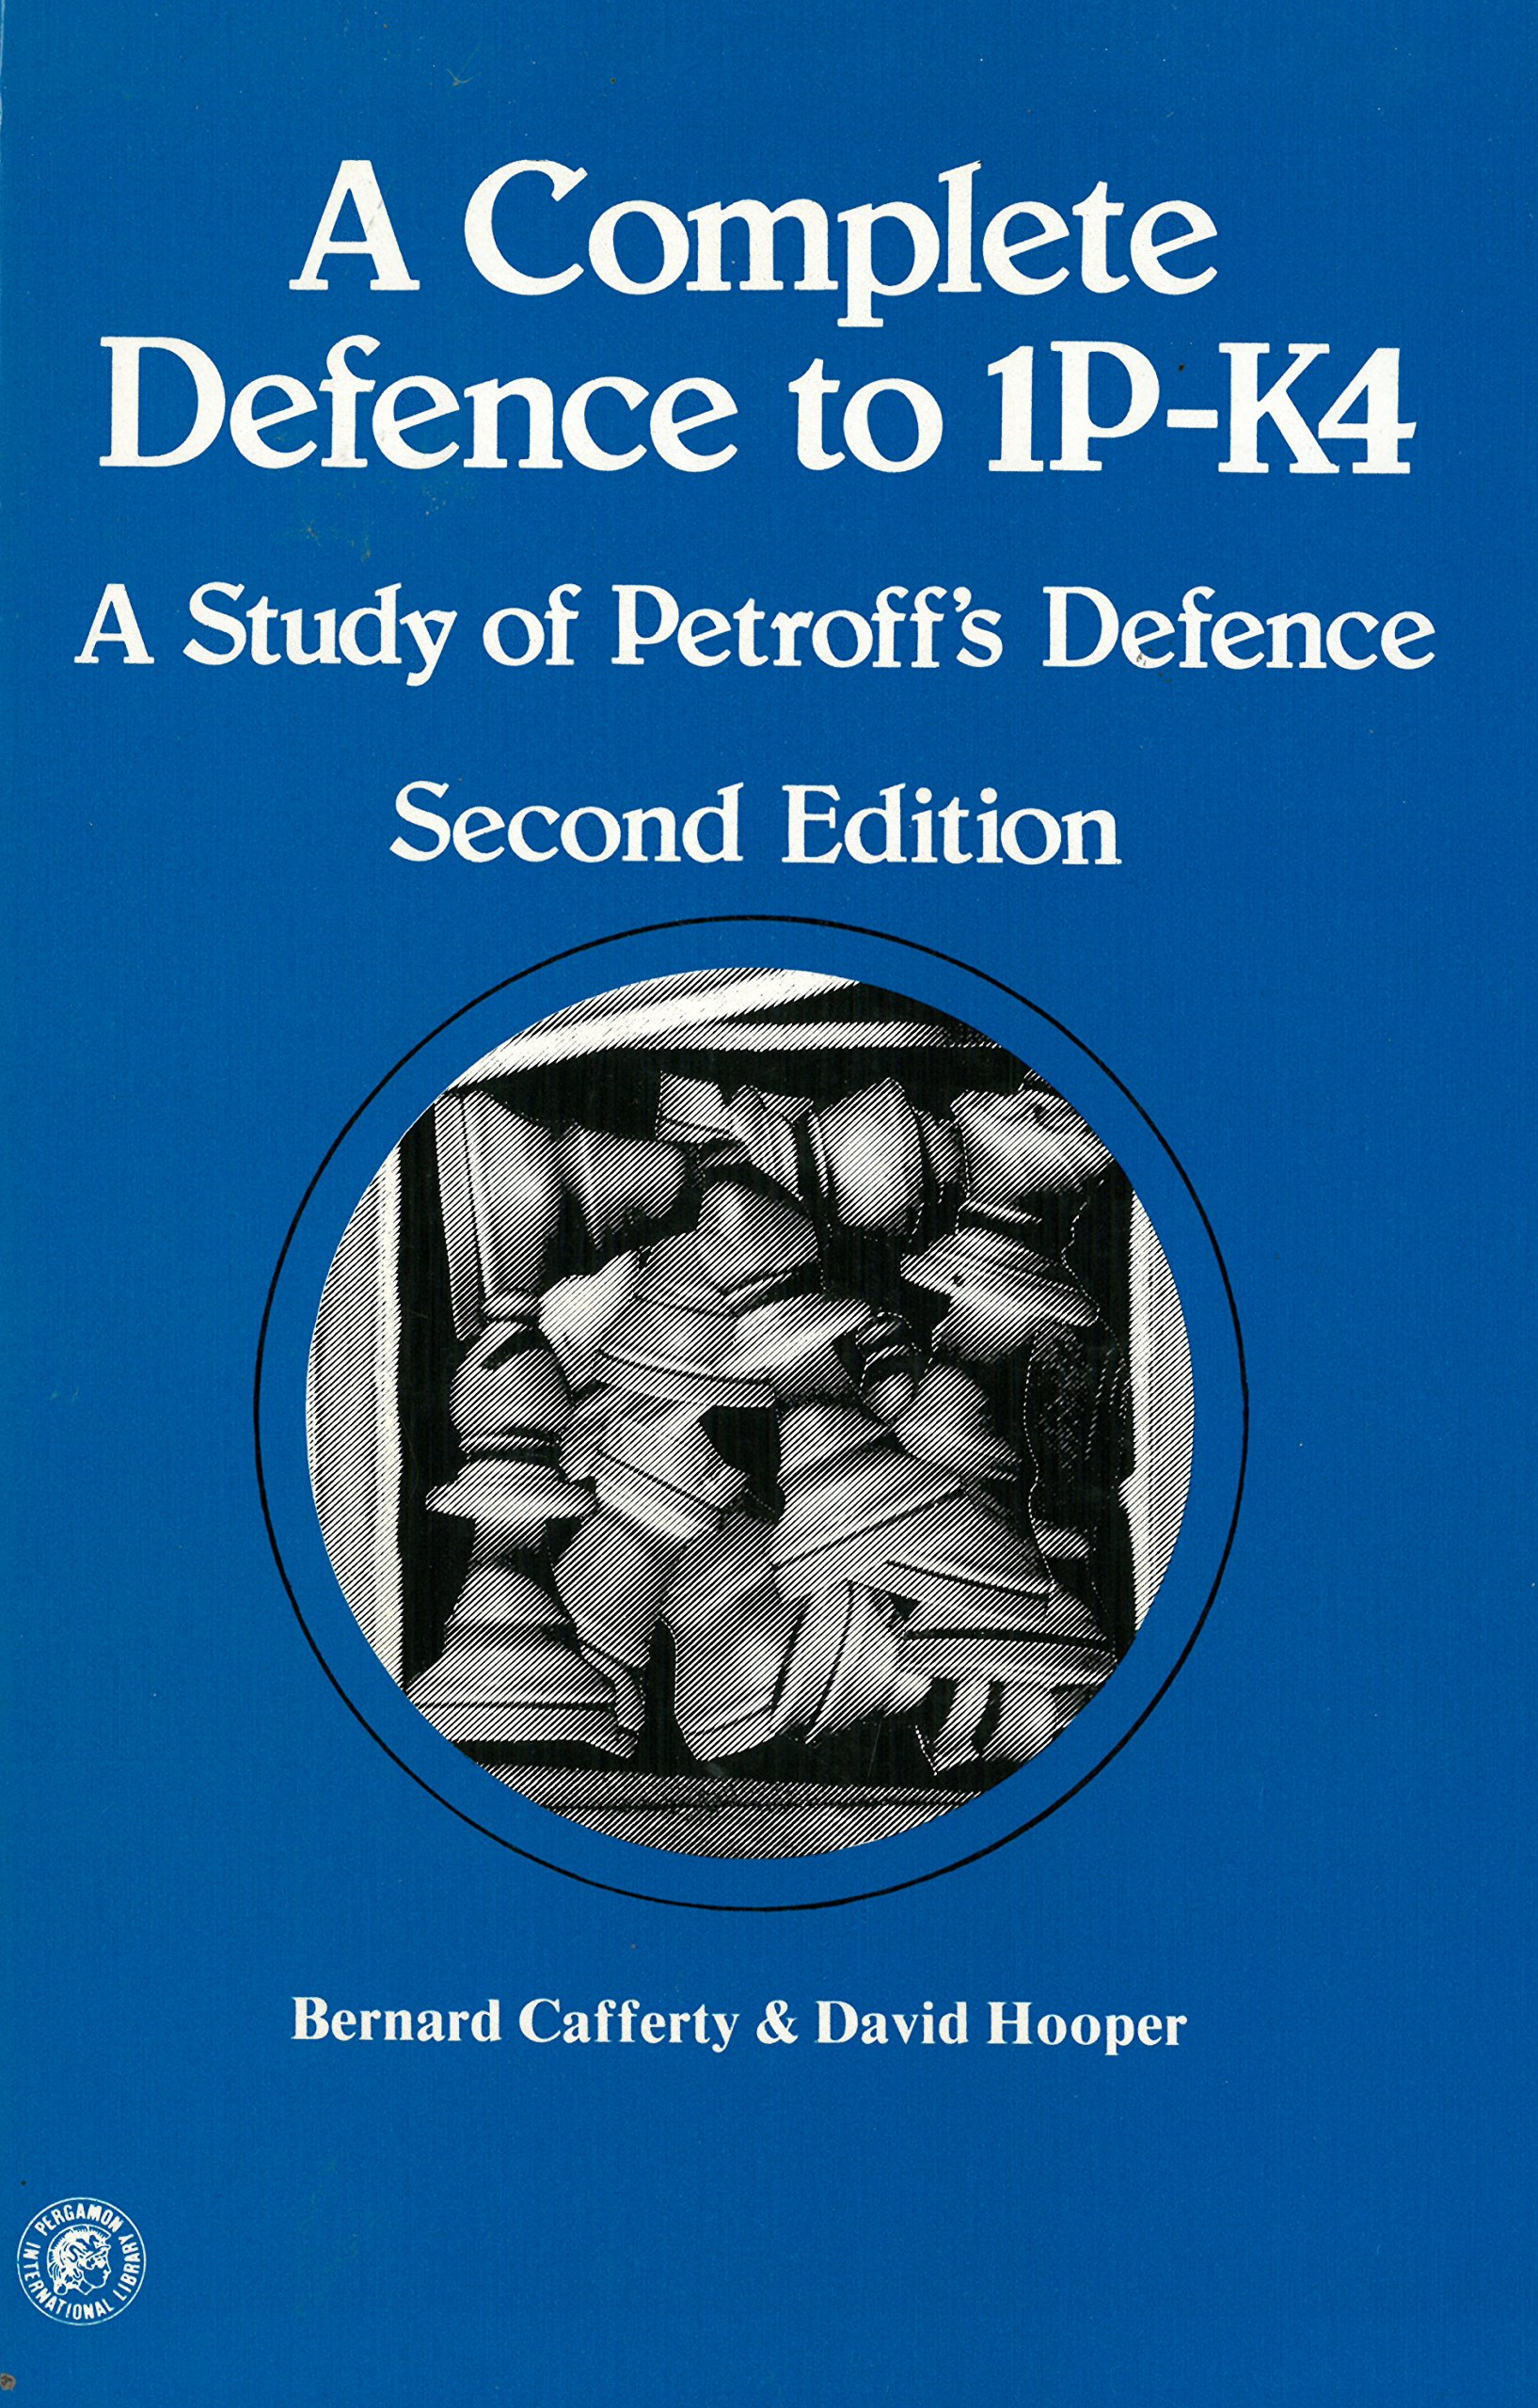 A Complete Defence to 1P-K4: A Study of Petroff's Defence (2nd ed.), Pergammon Press, ISBN 0-08-024088-7, 1967